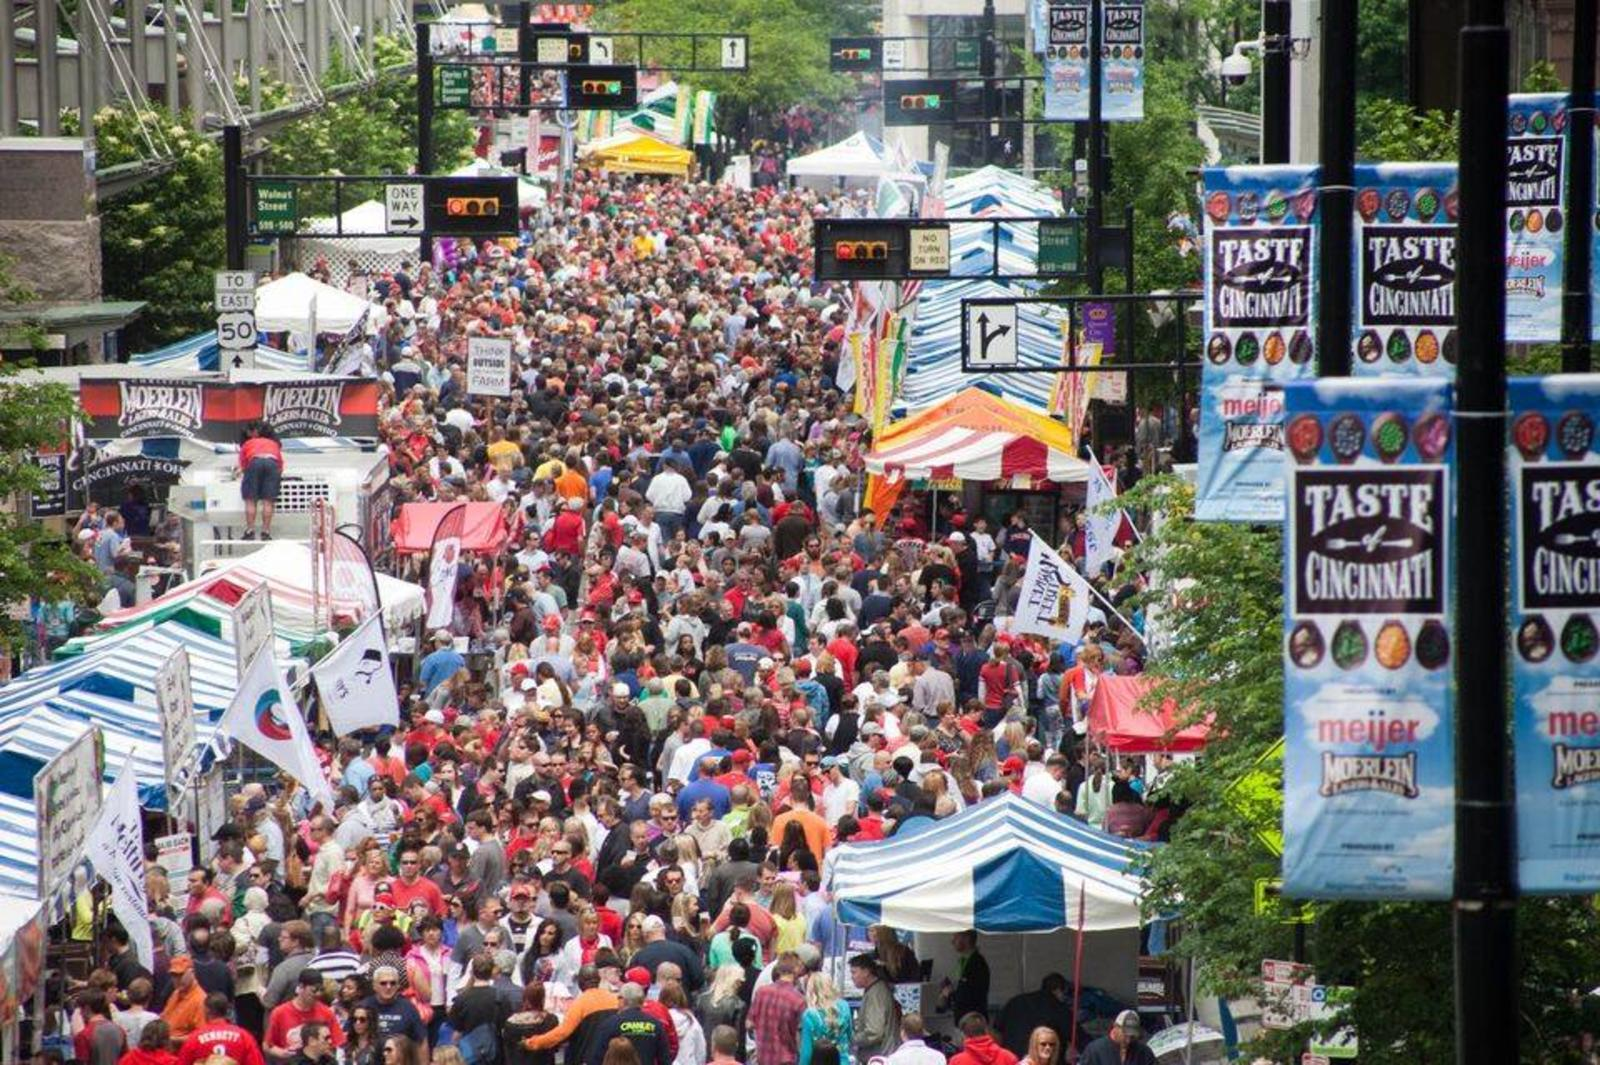 Taste of Cincinnati: The Longest-Running Food Festival in the U.S.